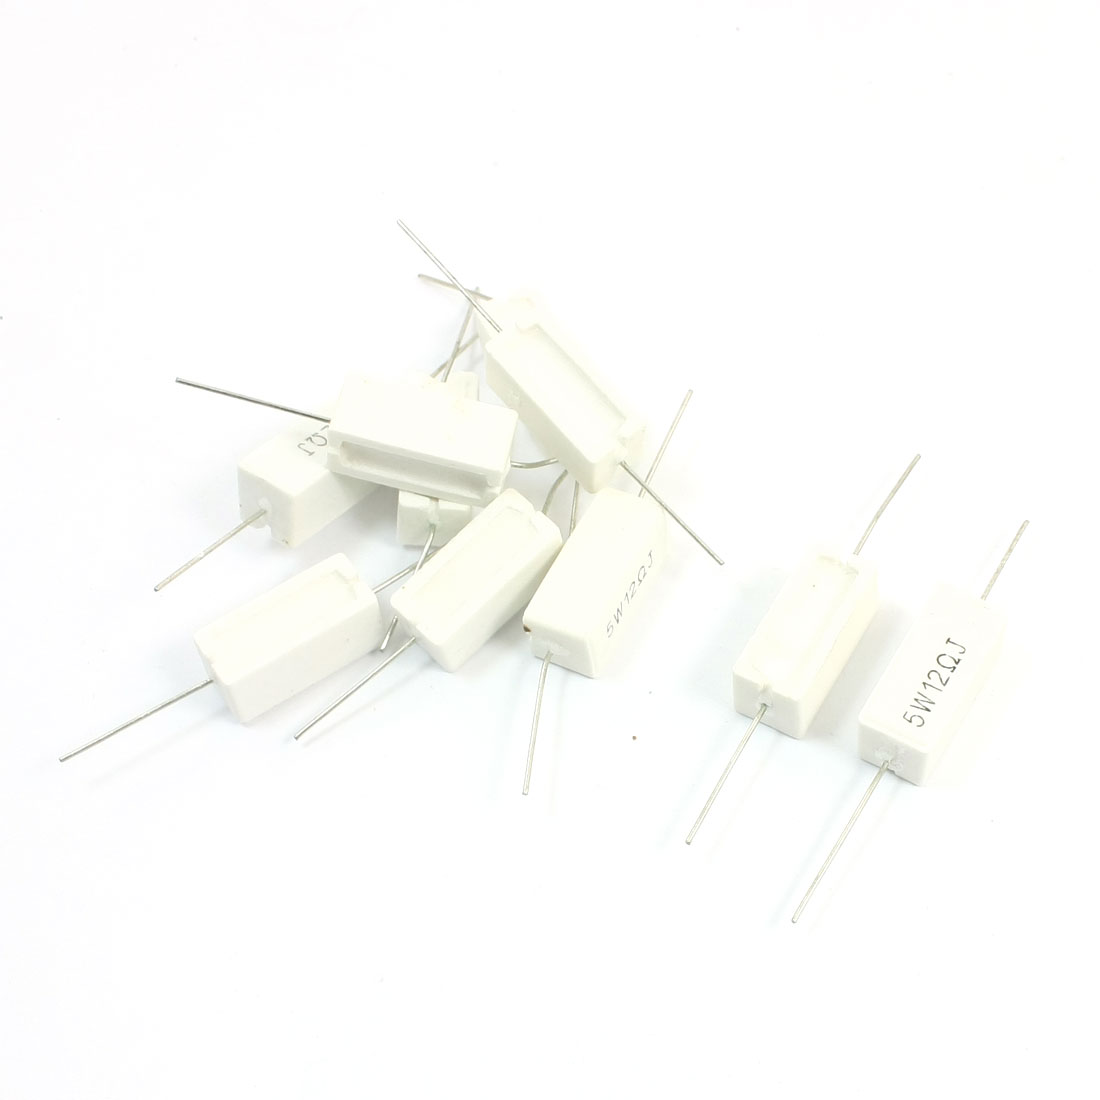 10Pcs 12 Ohm 5Watt Axial Leading Type Through Hole Rectangle Ceramic Cement Power Resistor 22mm x 10mm x 10mm